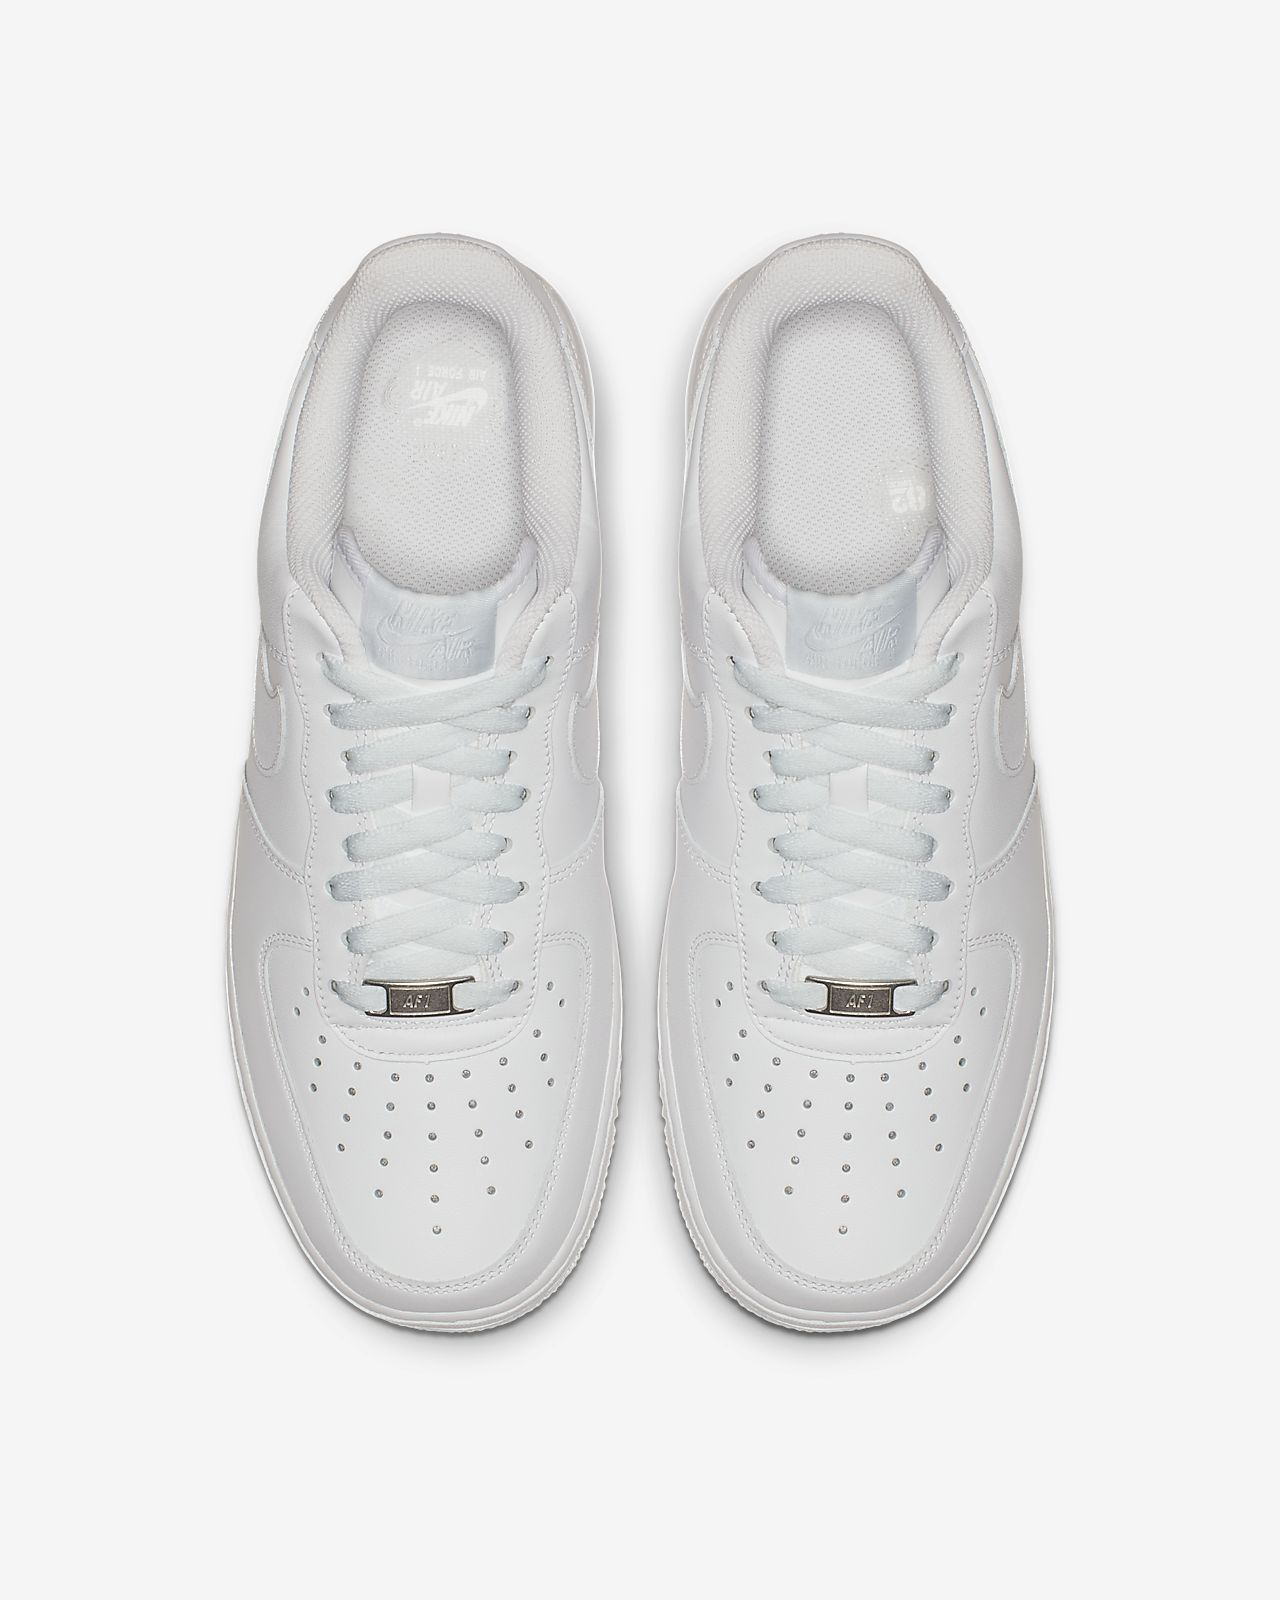 new concept 61ac7 0014b Low Resolution Nike Air Force 1  07 Damenschuh Nike Air Force 1  07  Damenschuh